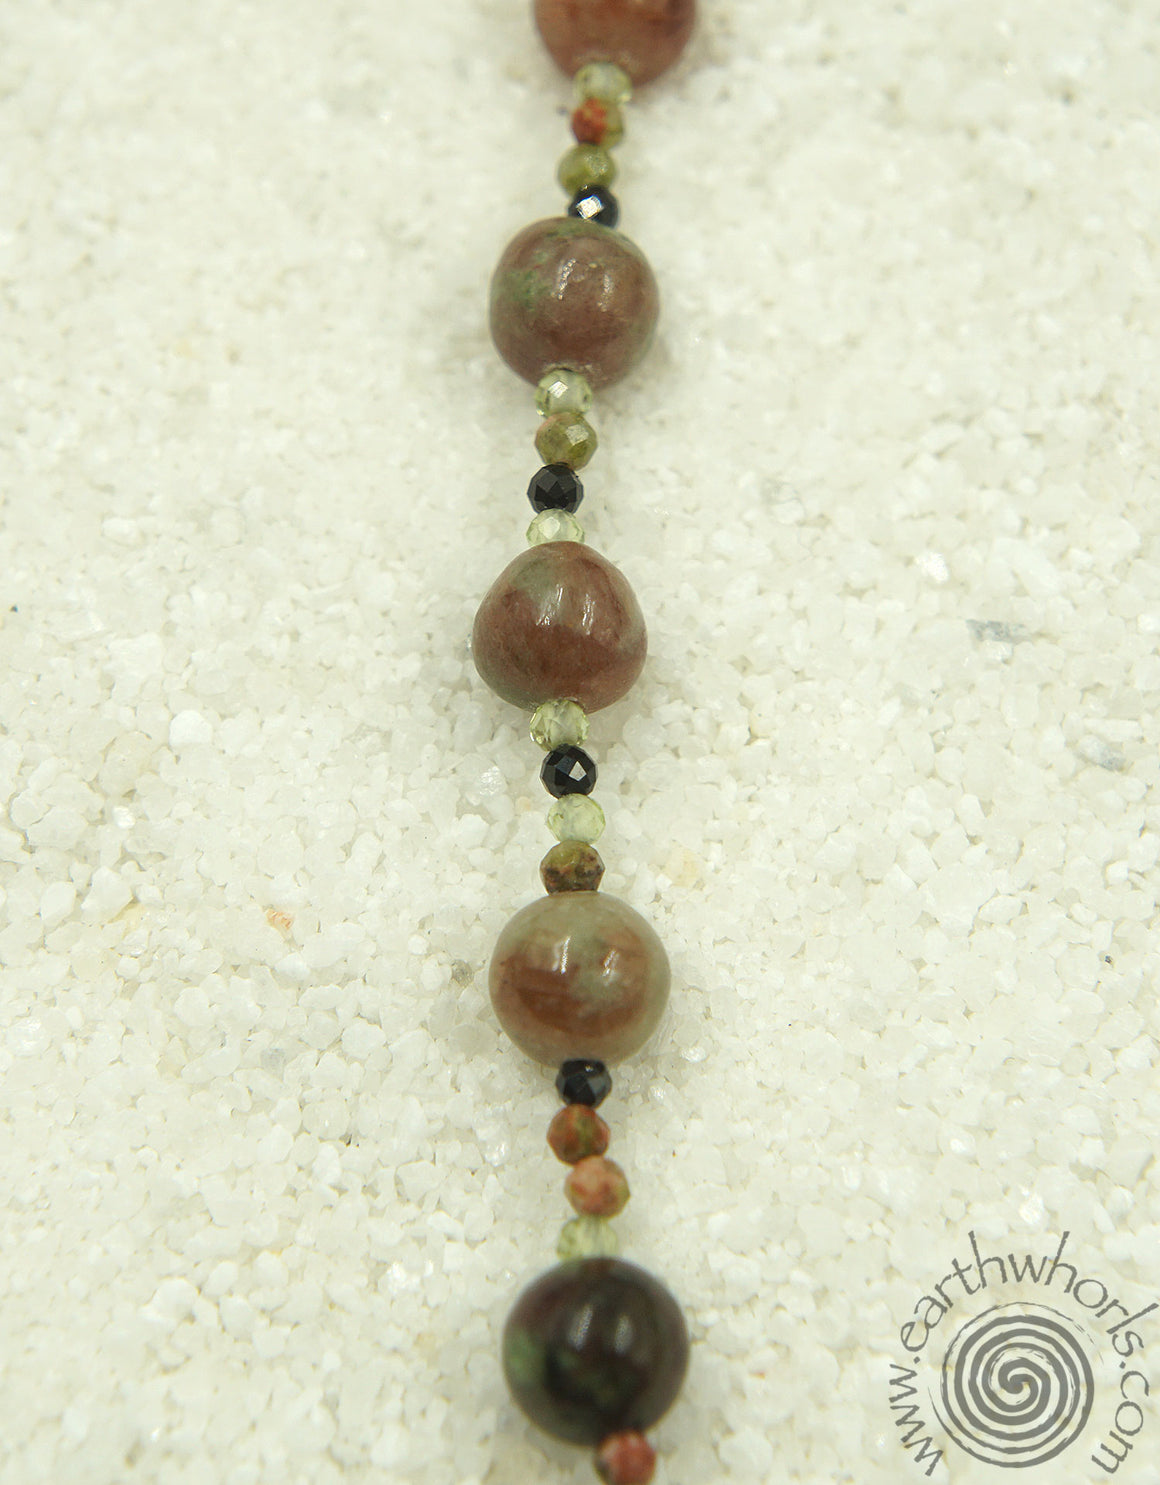 Garnet, Mixed Stones & Sterling Silver Choker necklace - EarthWhorls, LLC